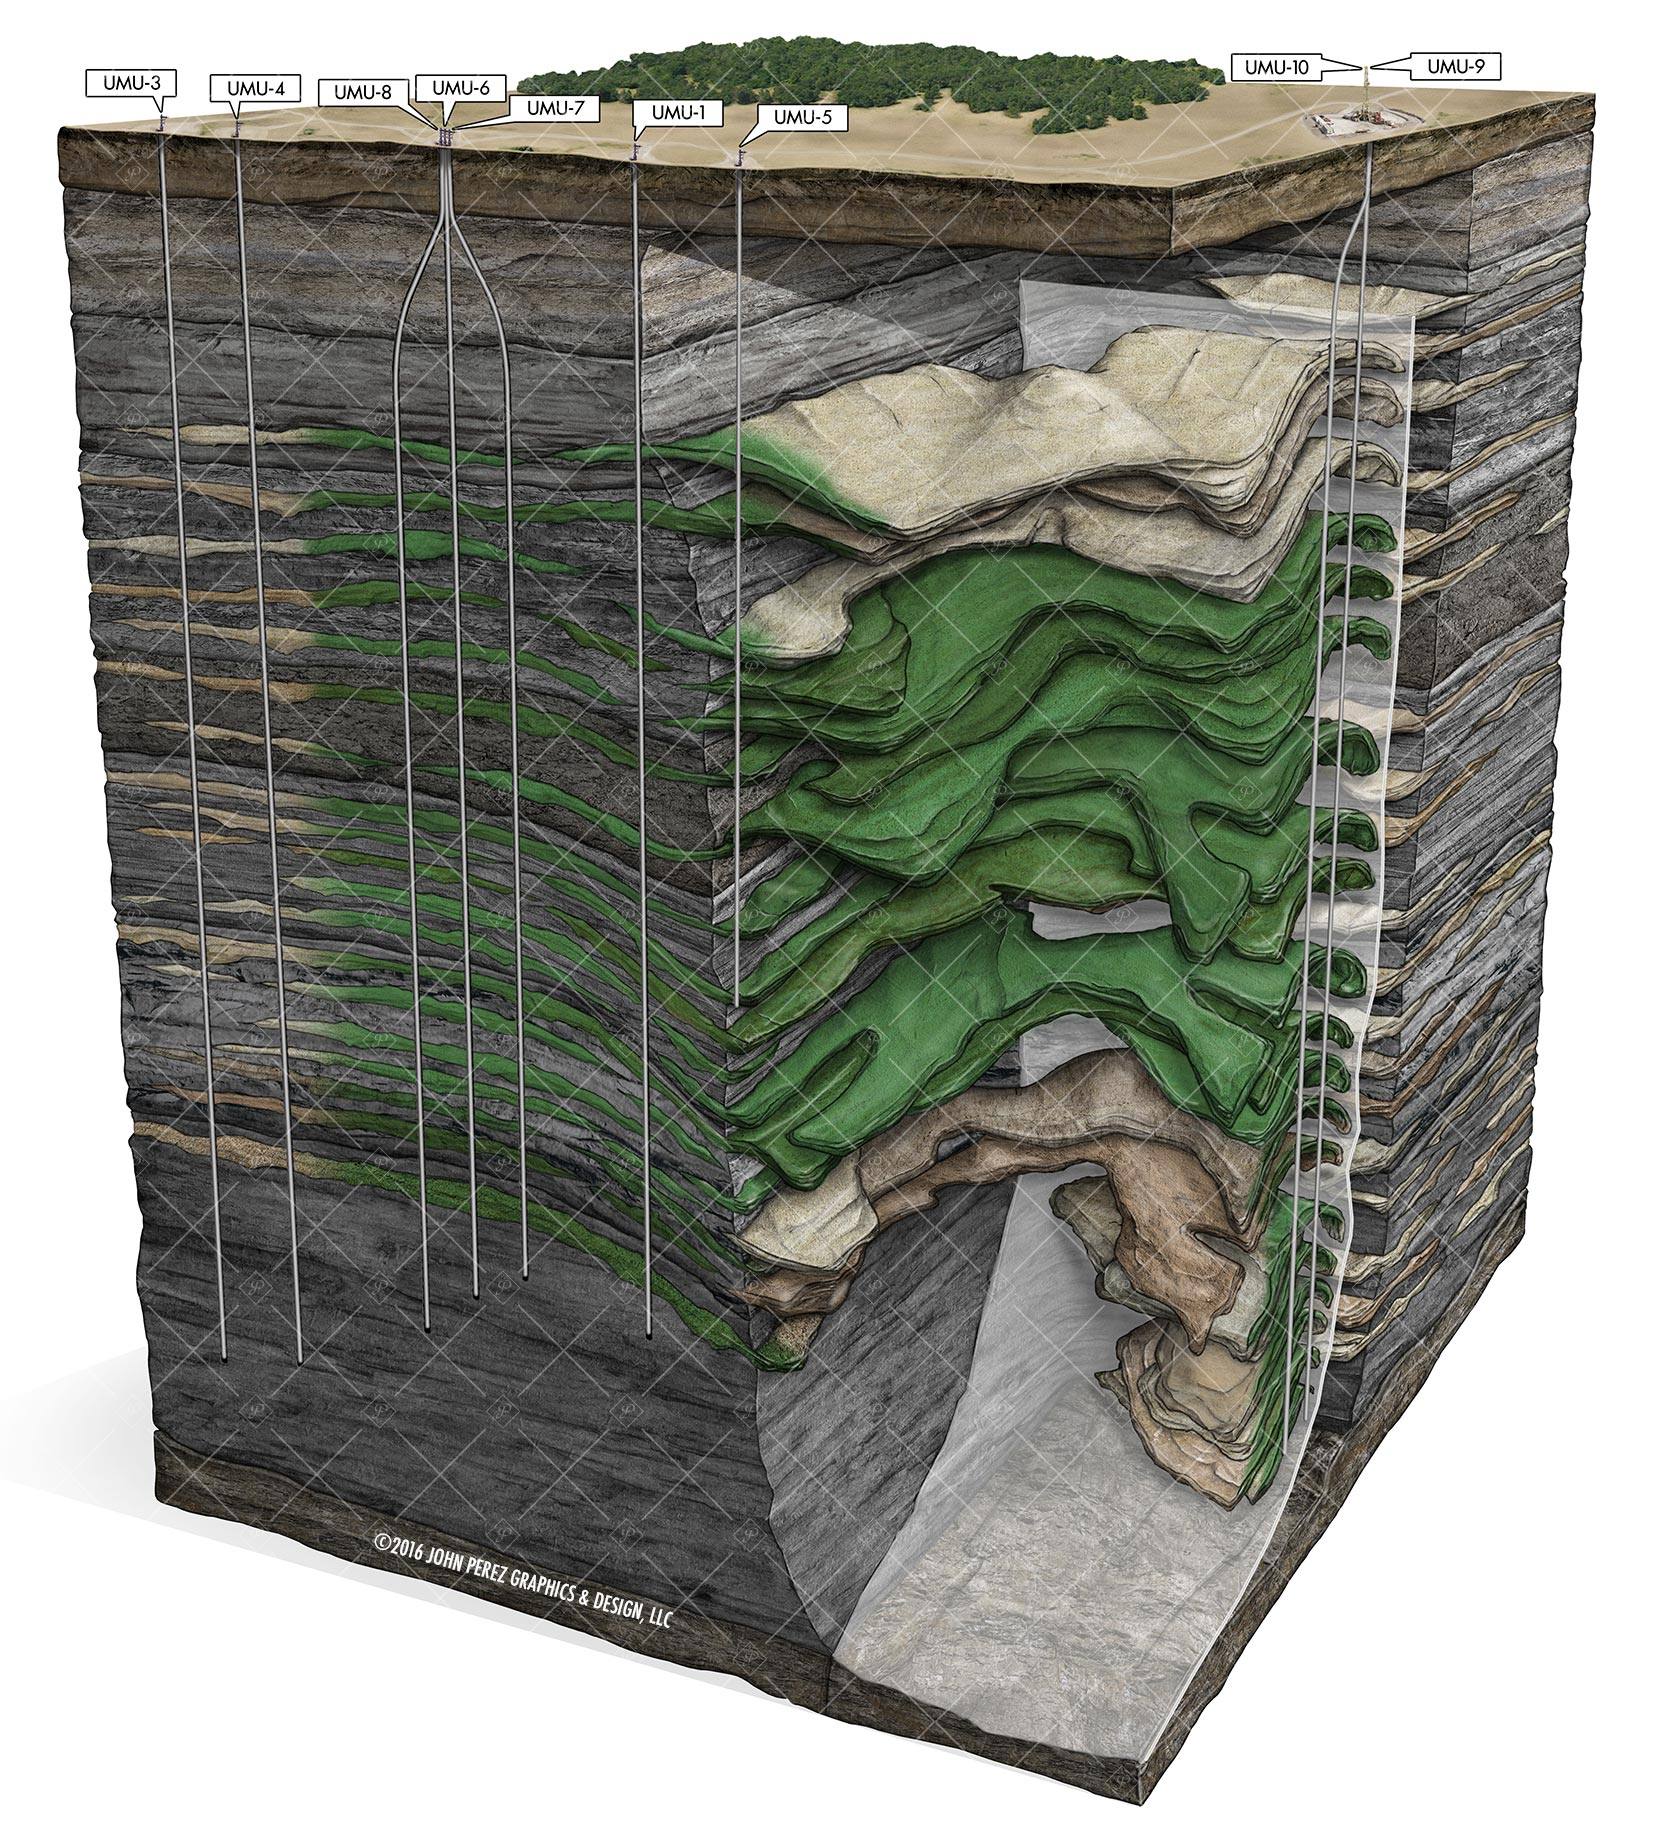 Oil Bearing Stacked Sandstone Beds Schematic, drilling geology, oil and gas graphics, oil and gas schematics, john perez graphics, oil and gas illustration